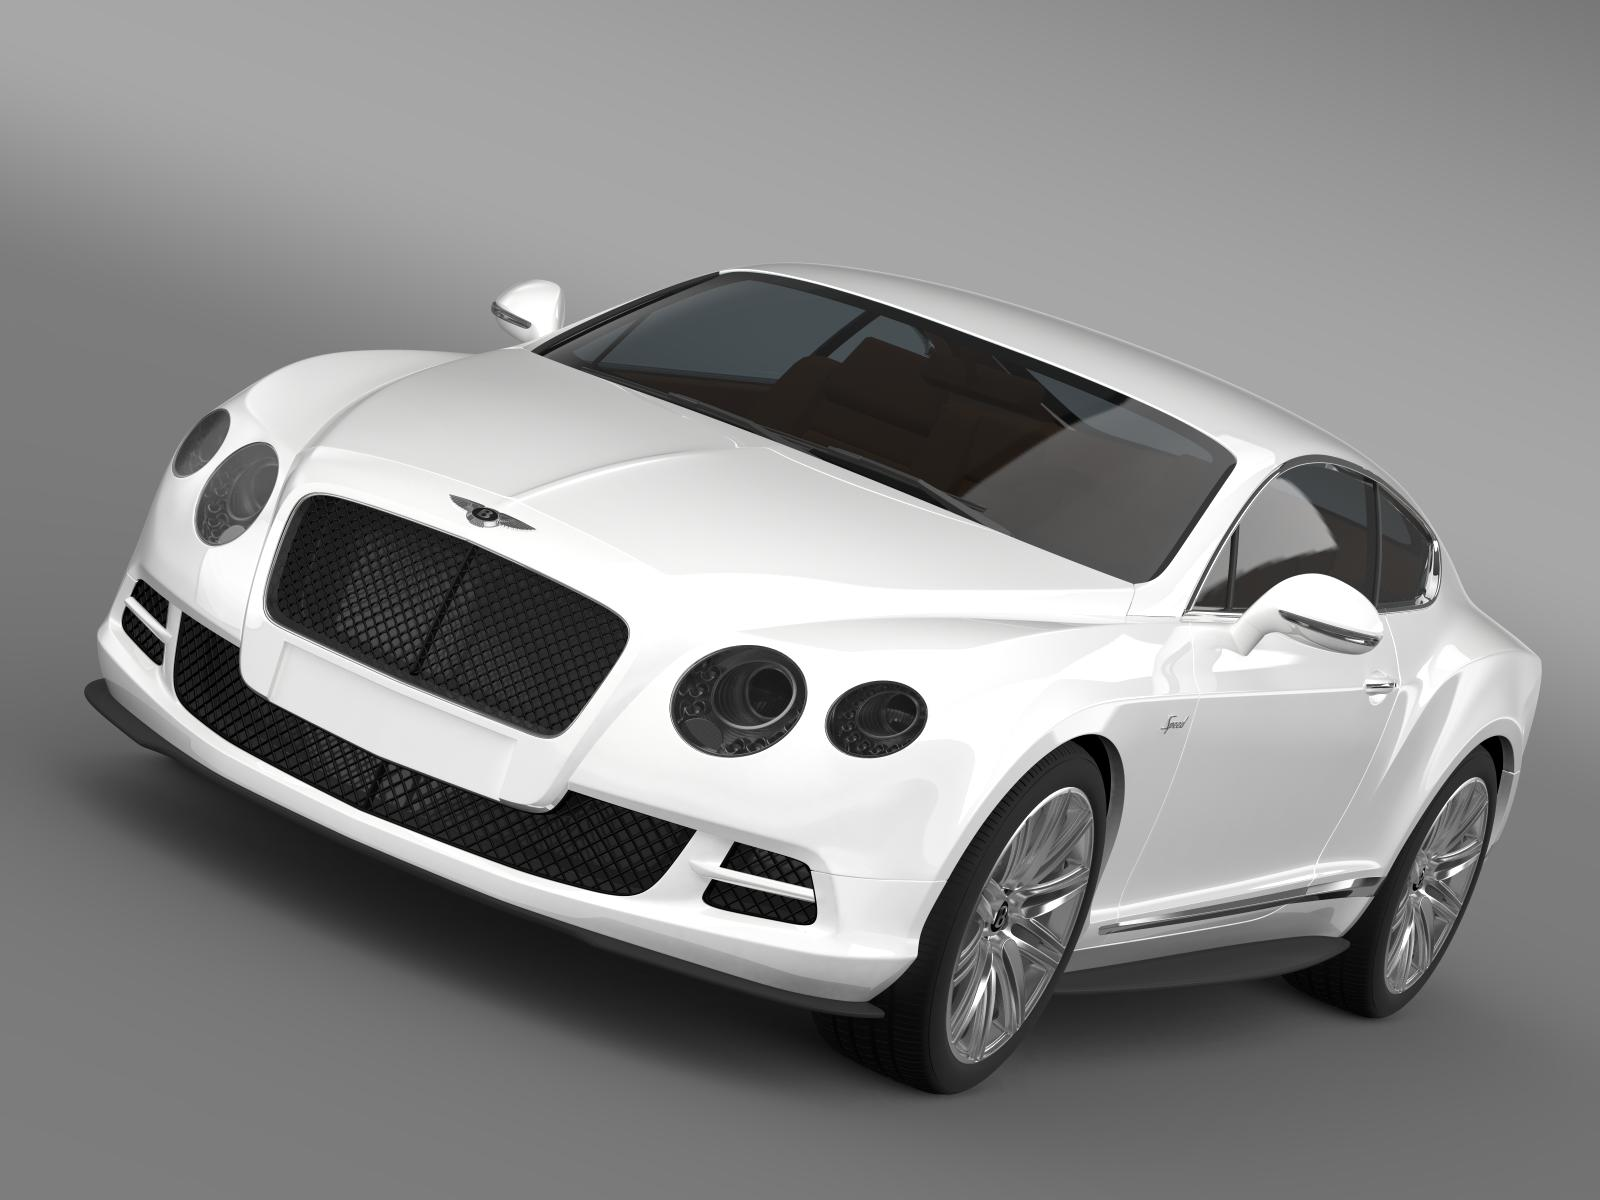 Bentley Continental gt speed 2014 3d modelis 3ds max fbx c4d lwo ma mb hrc xsi obj 163499